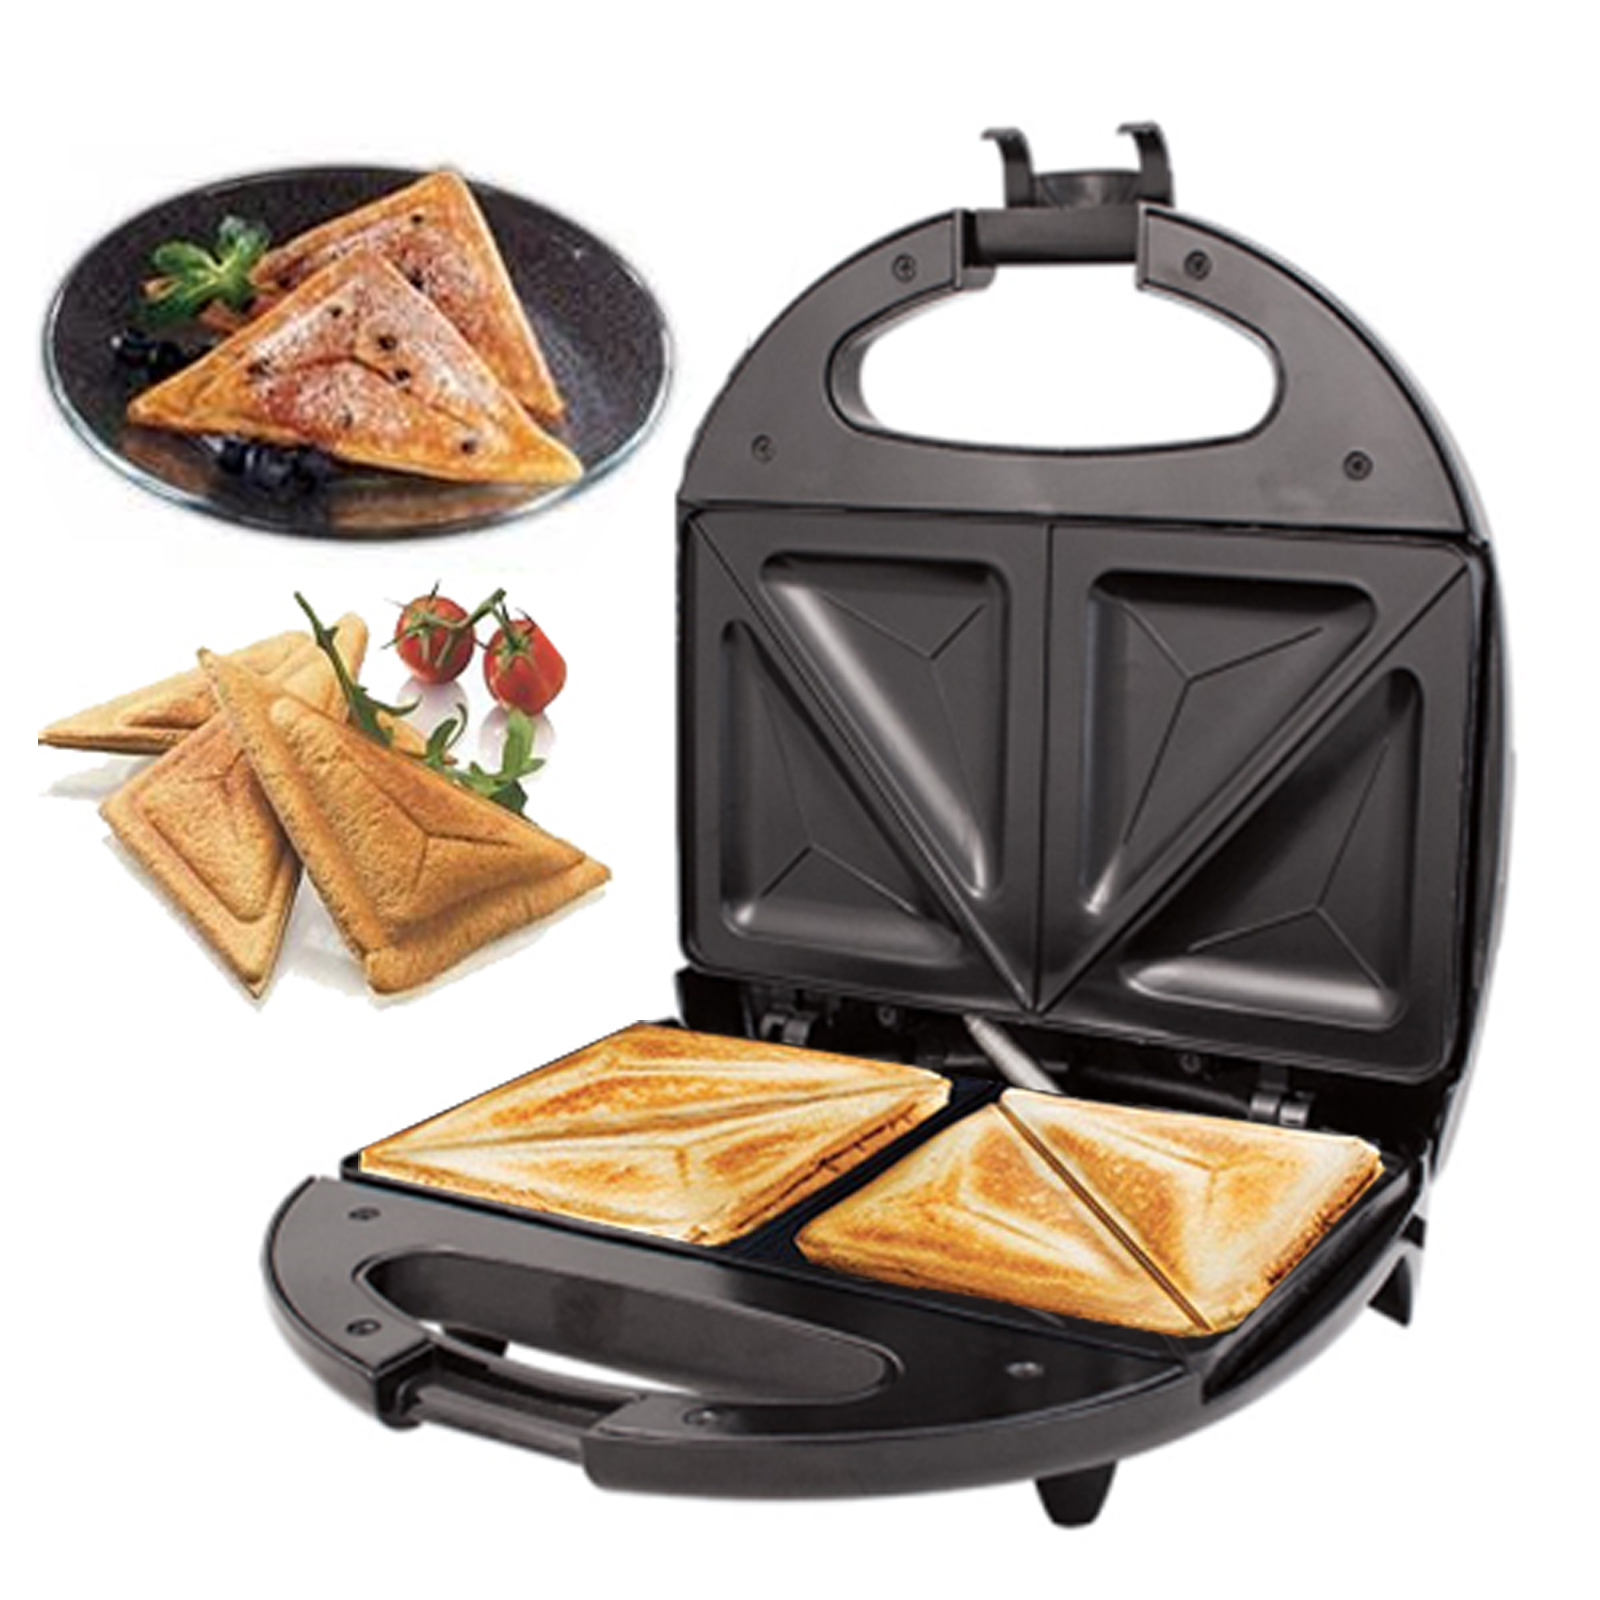 black electric 2 slice sandwich toast toaster maker 700w. Black Bedroom Furniture Sets. Home Design Ideas